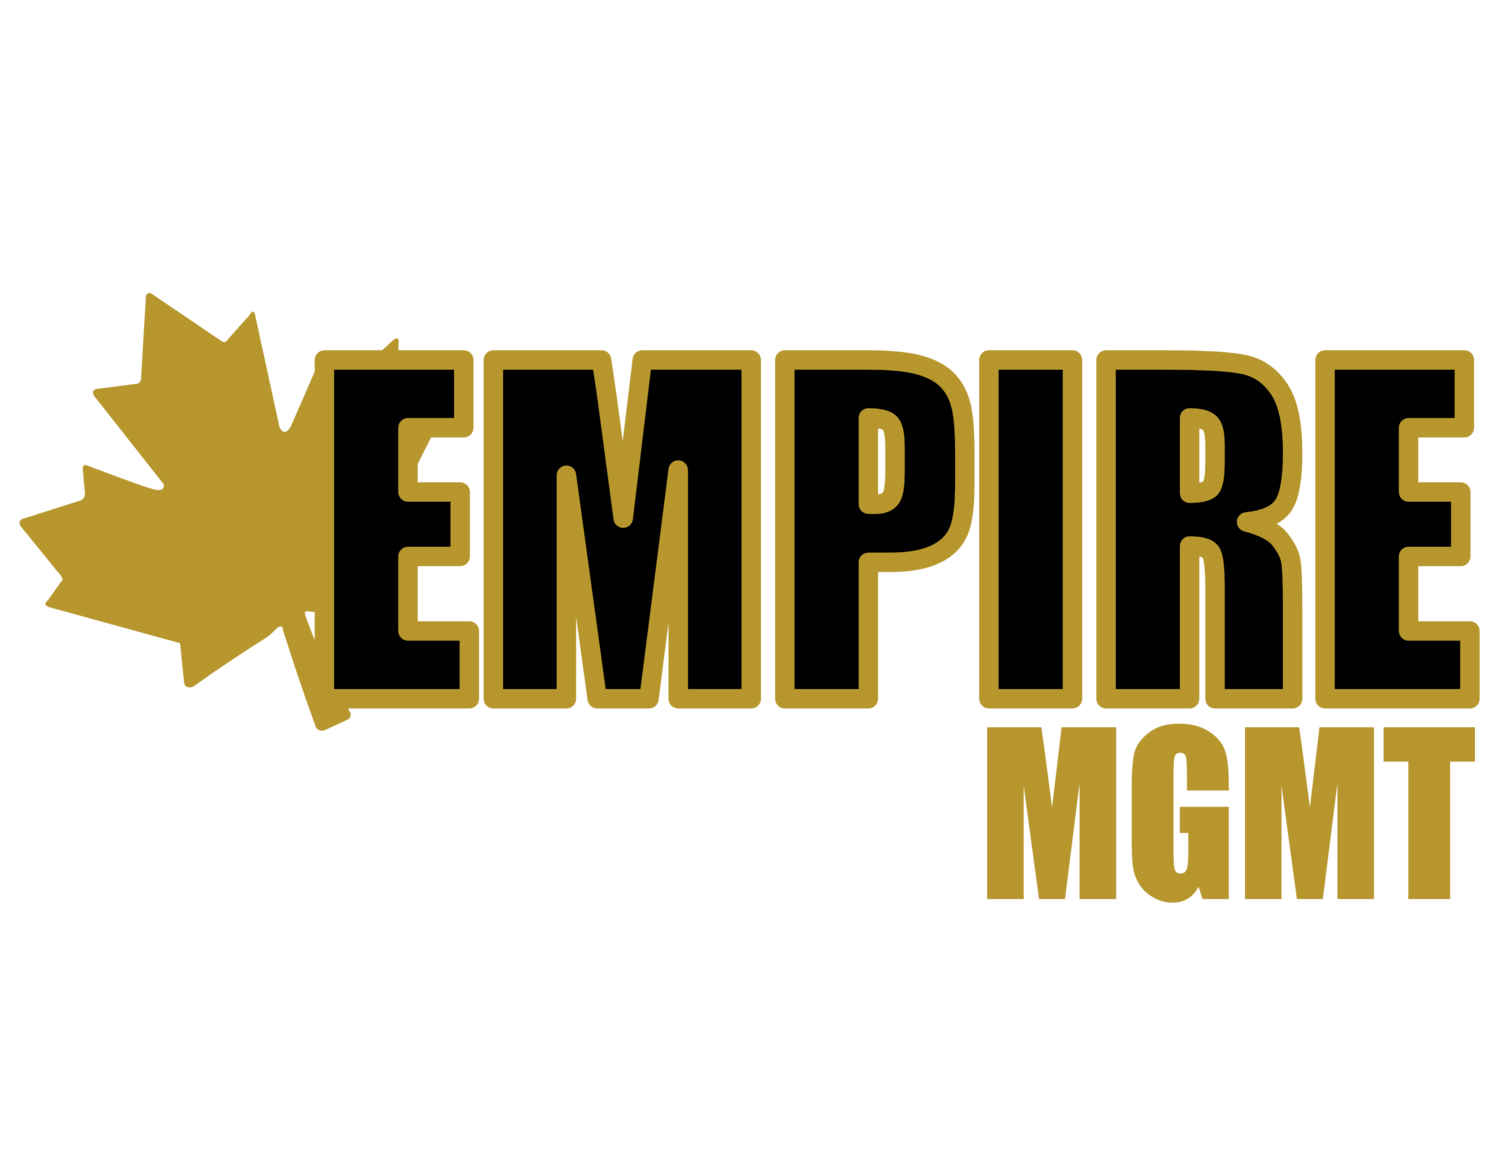 Empire MGMT